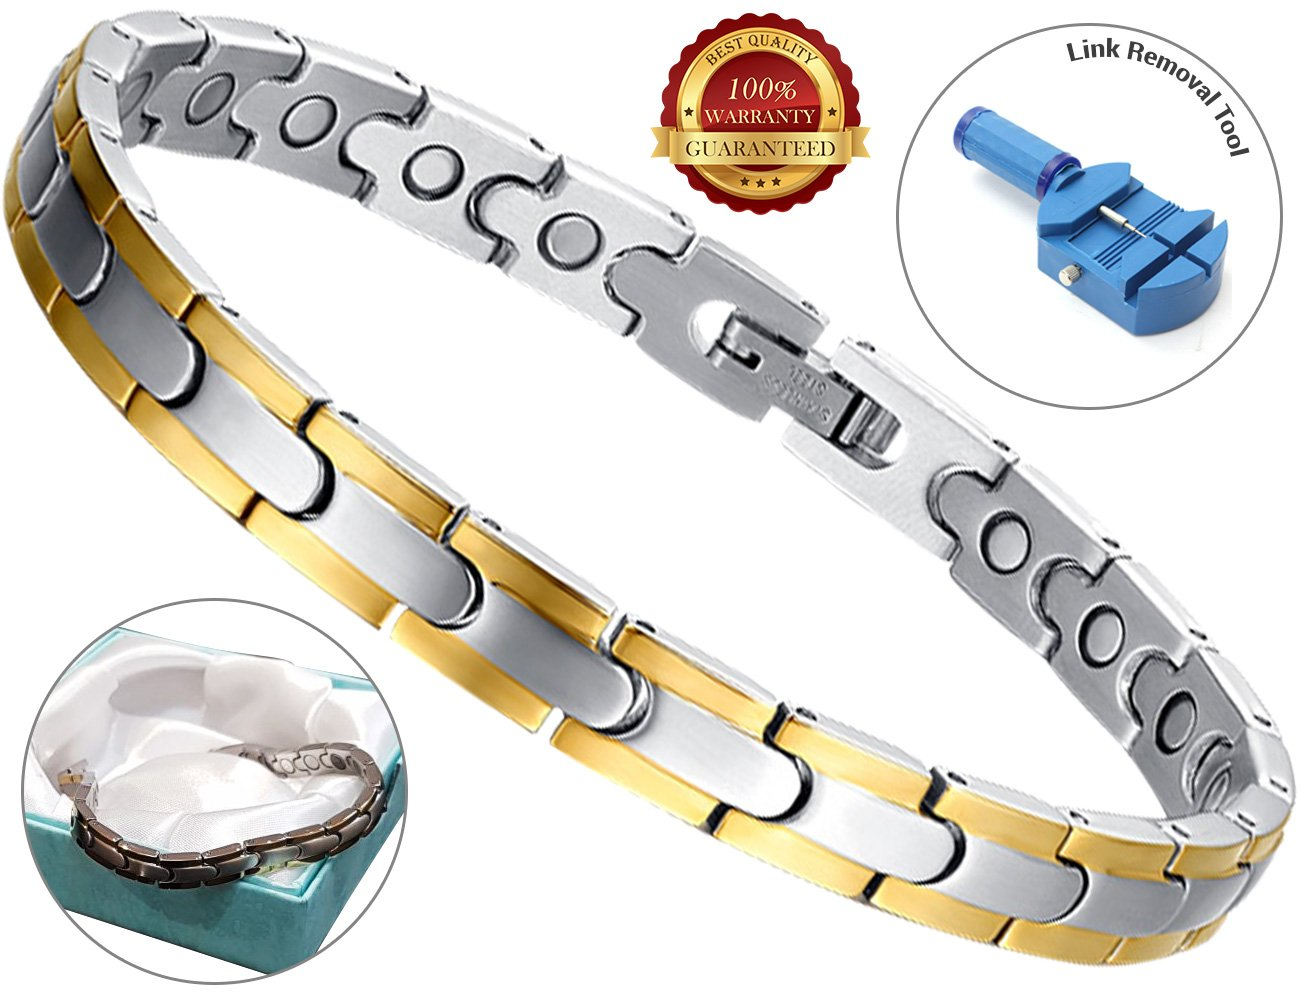 BisLinks® Magnetic Titanium Elegant Health Bracelet For Men & Women Carpal Tunnel Relief Arthritis Pain Therapy Healing Chronic Pain Negative Ion Energy (3000 Gauss Each Magnet) FREE LINK REMOVAL TOOL